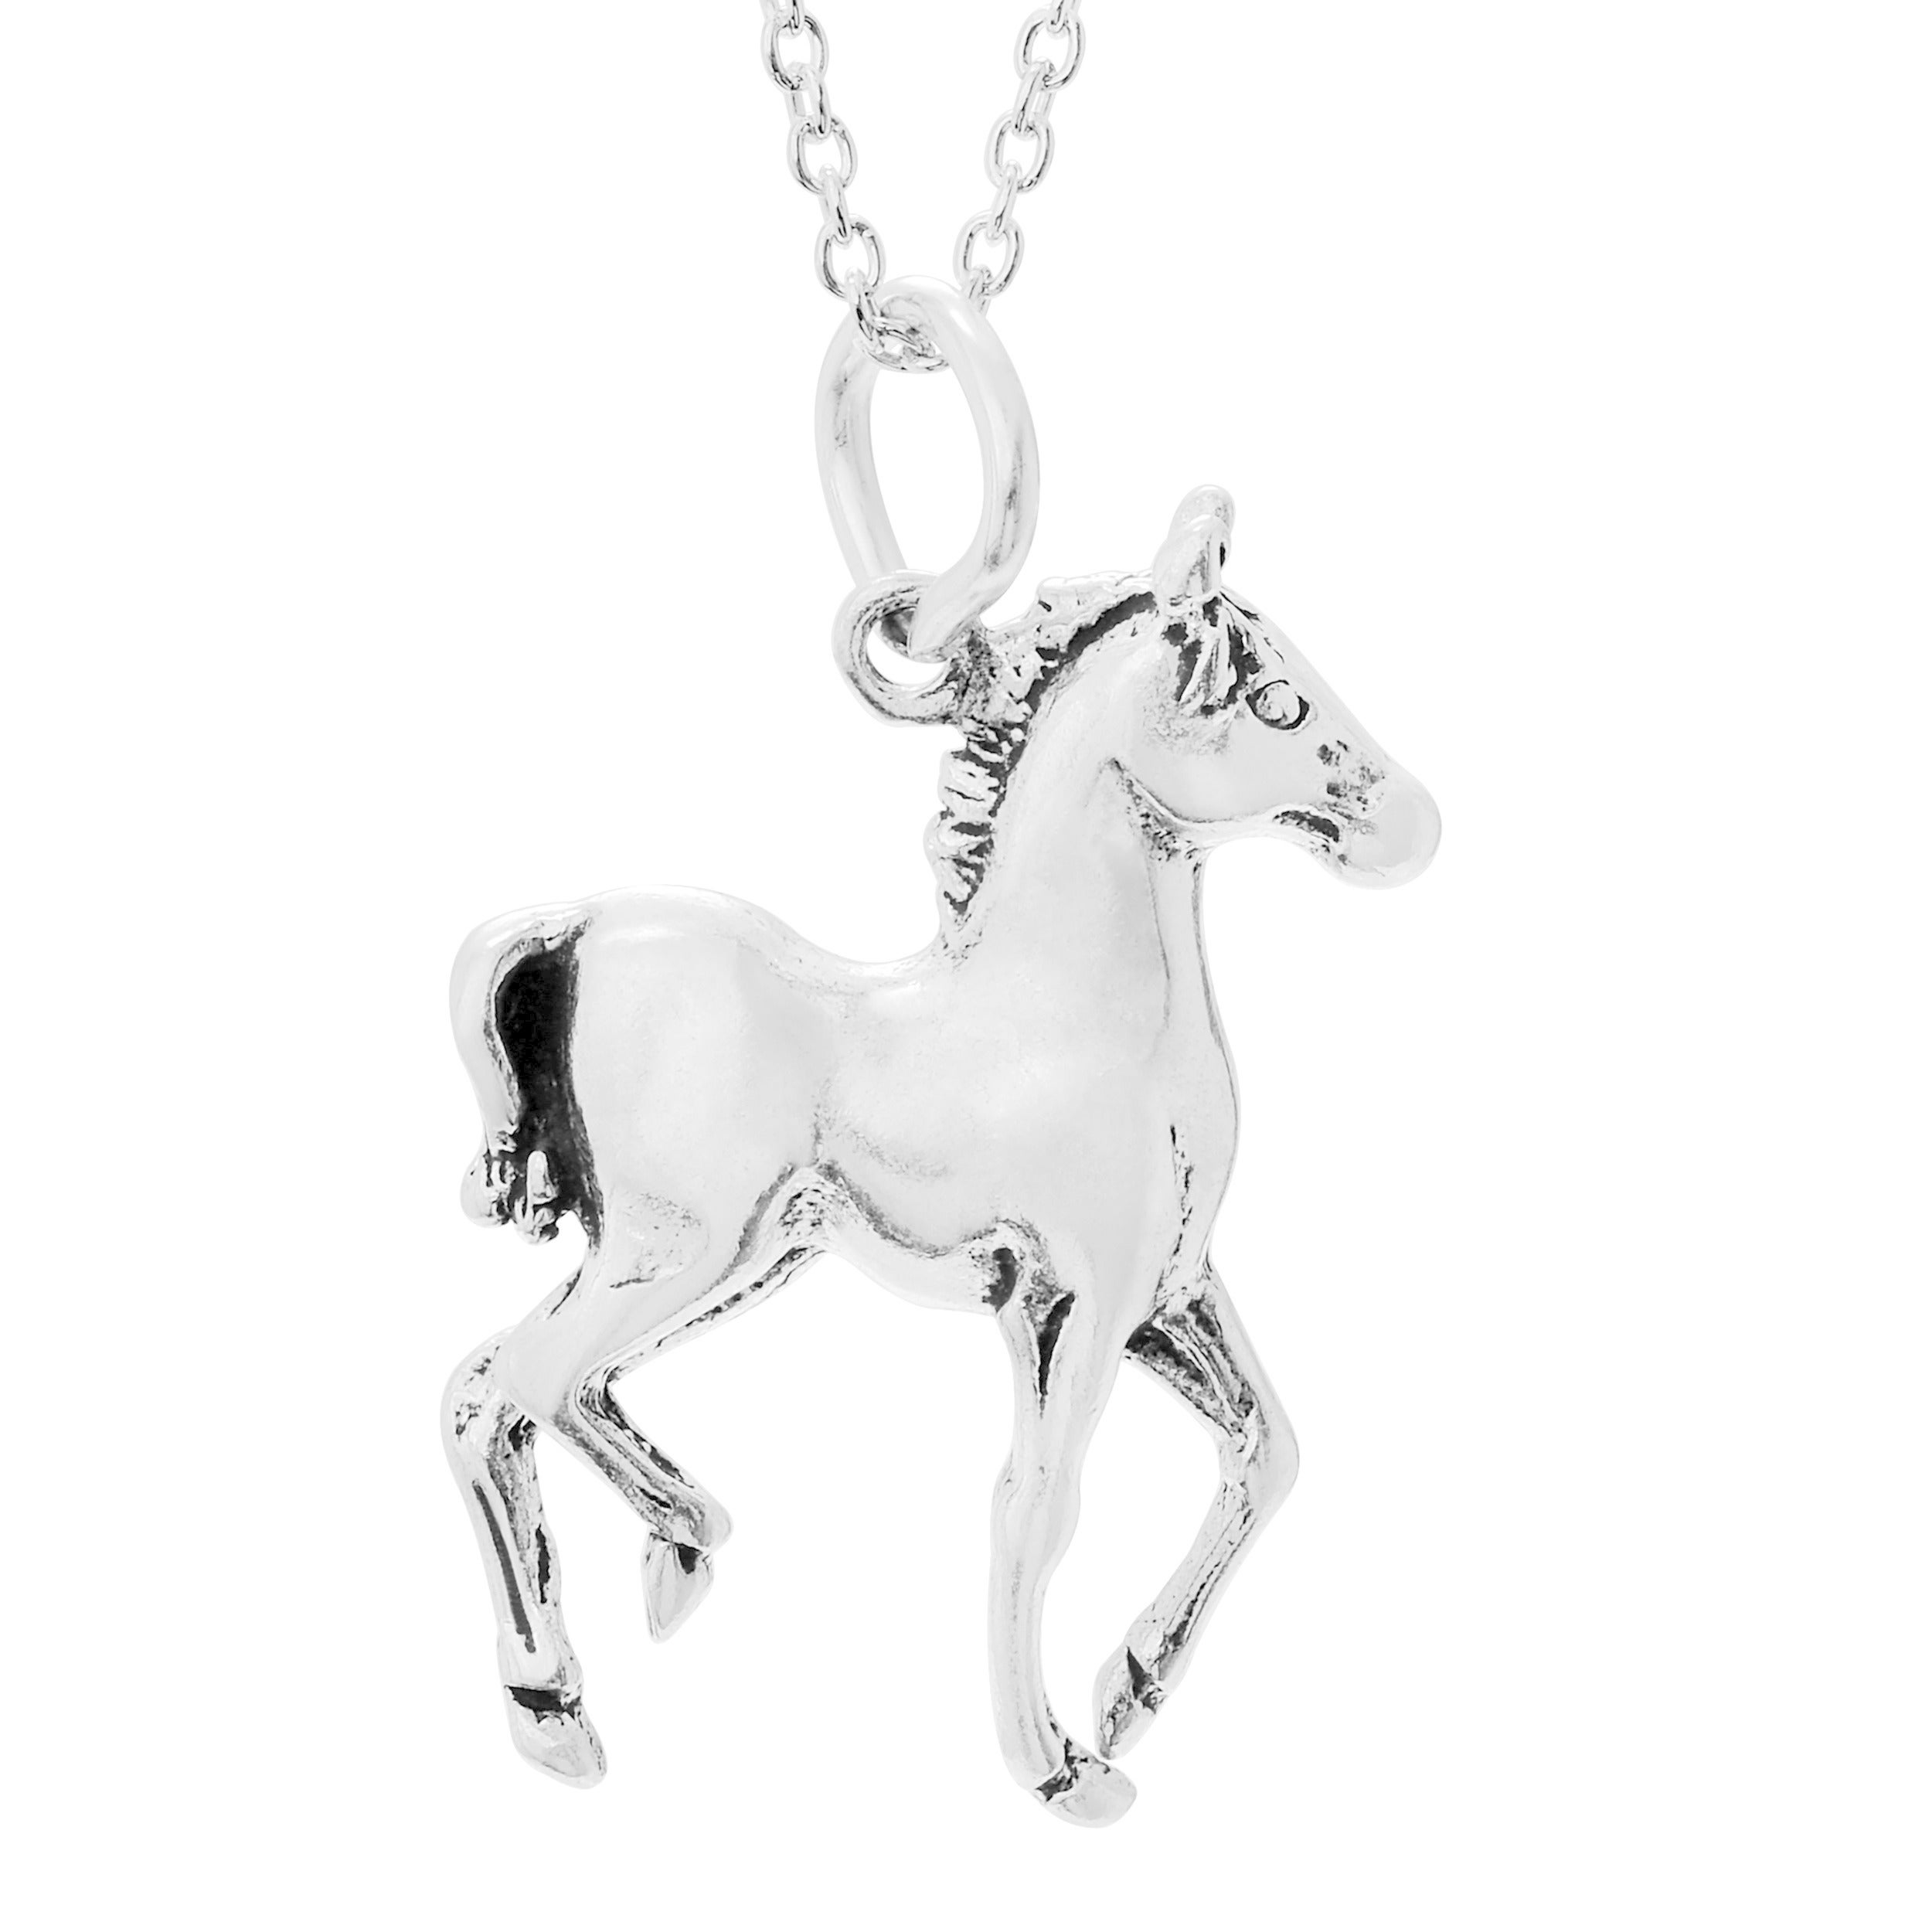 sea eau no product necklace horse hana beach gifts pendant jewelry jwl